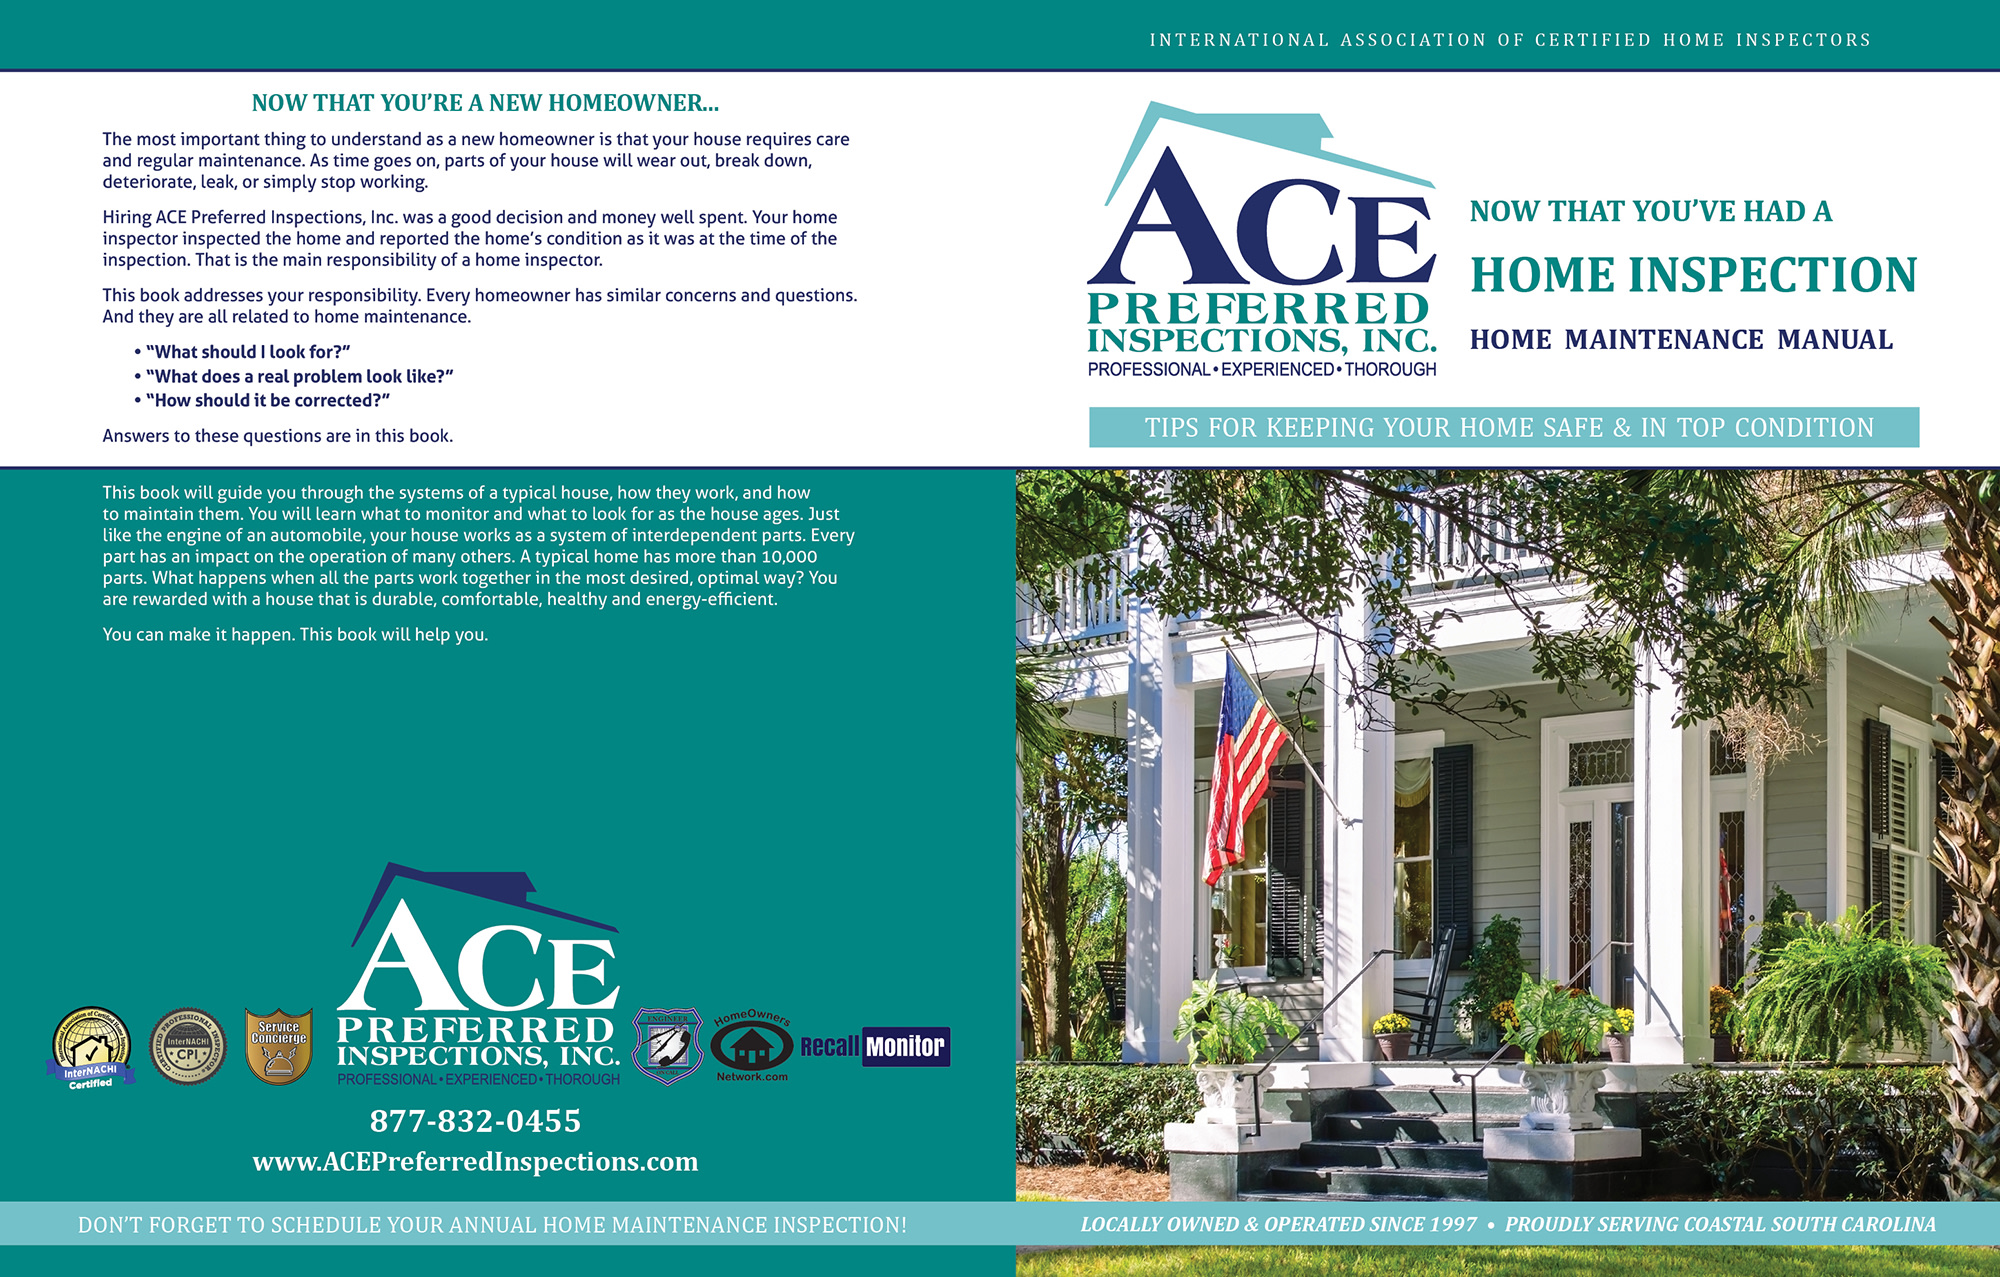 Custom Home Maintenance Book for Ace Preferred Inspections.